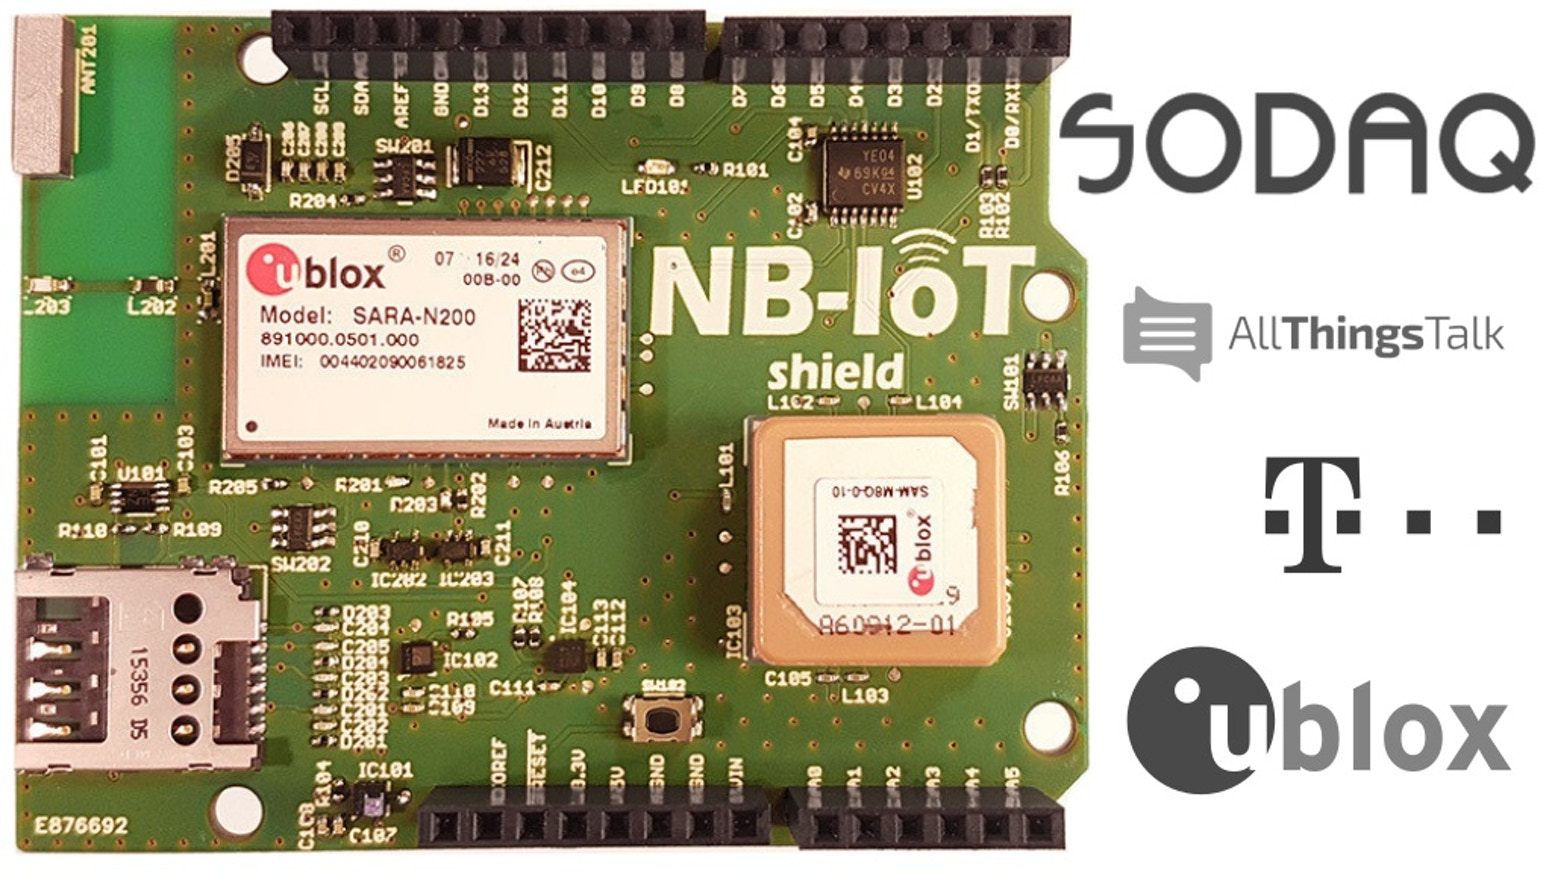 The First Nb Iot Shield For Arduino Supported By T Mobile Sodaq Make Your Own Temperature Controller With An Join Revolution This Get Connected And Start Using